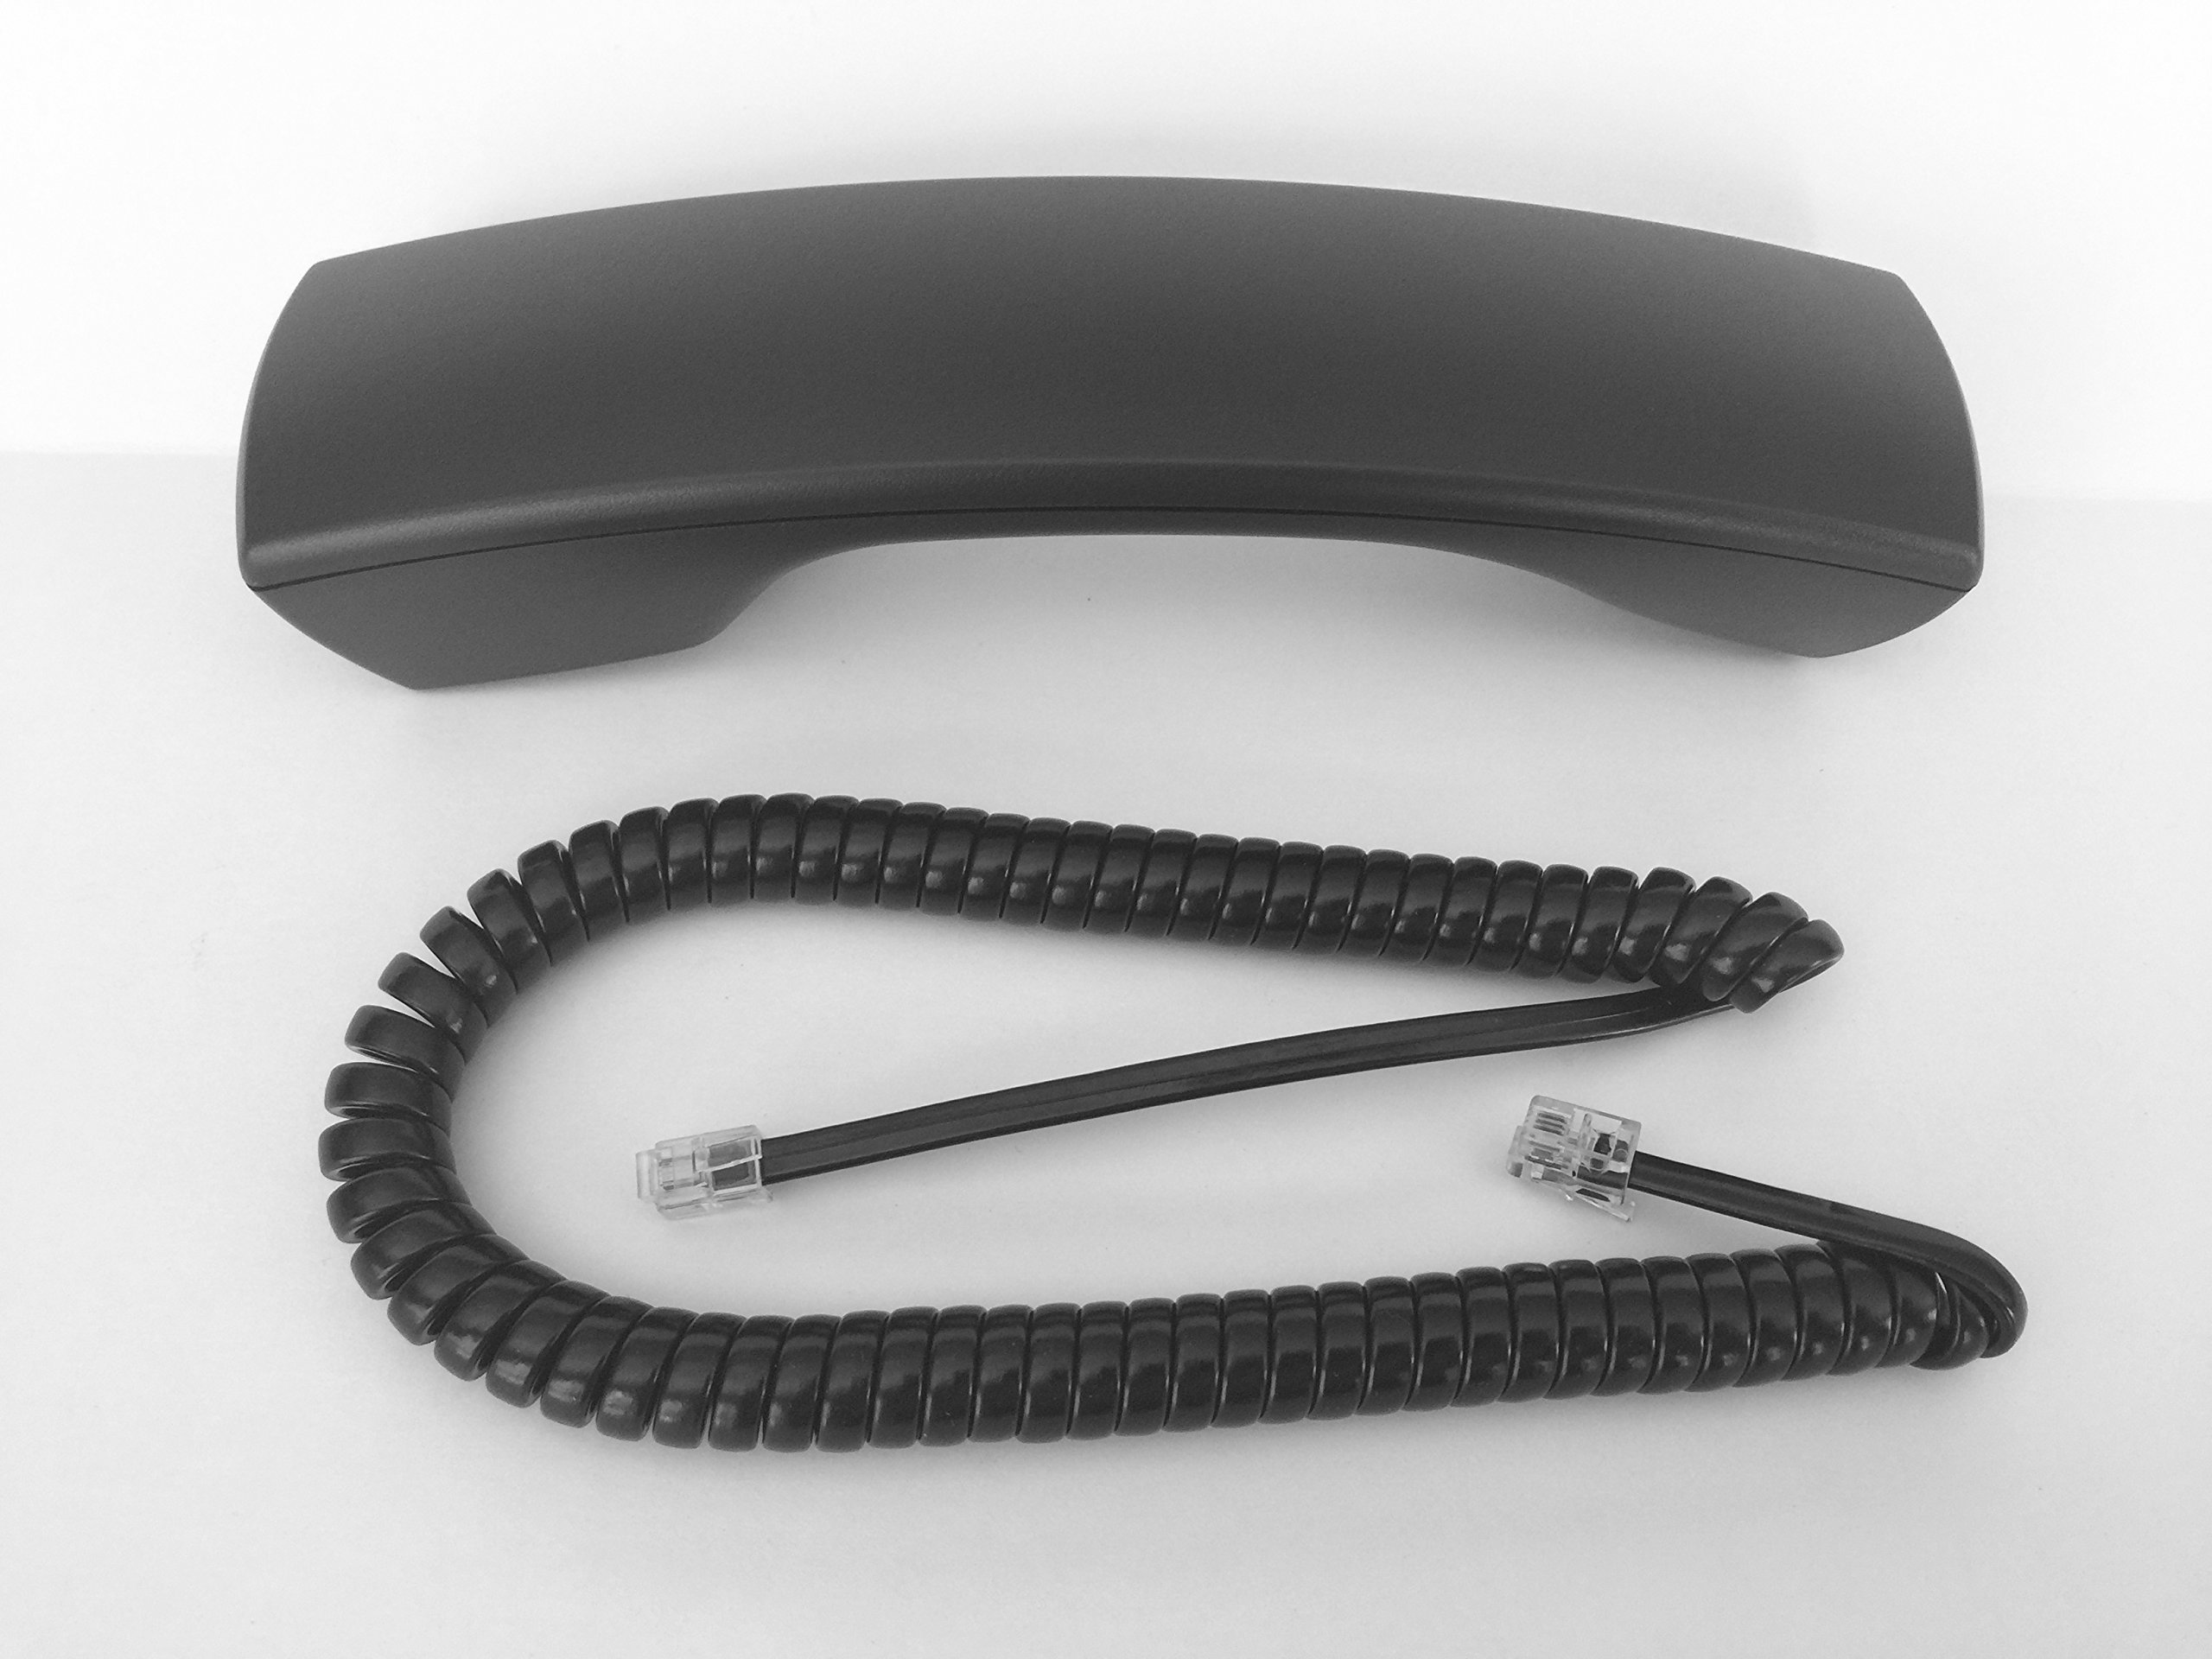 The VoIP Lounge Replacement Handset with 9 Foot Cord for NEC DSX Series Phone 1090020 1090021 1090023 by The VoIP Lounge